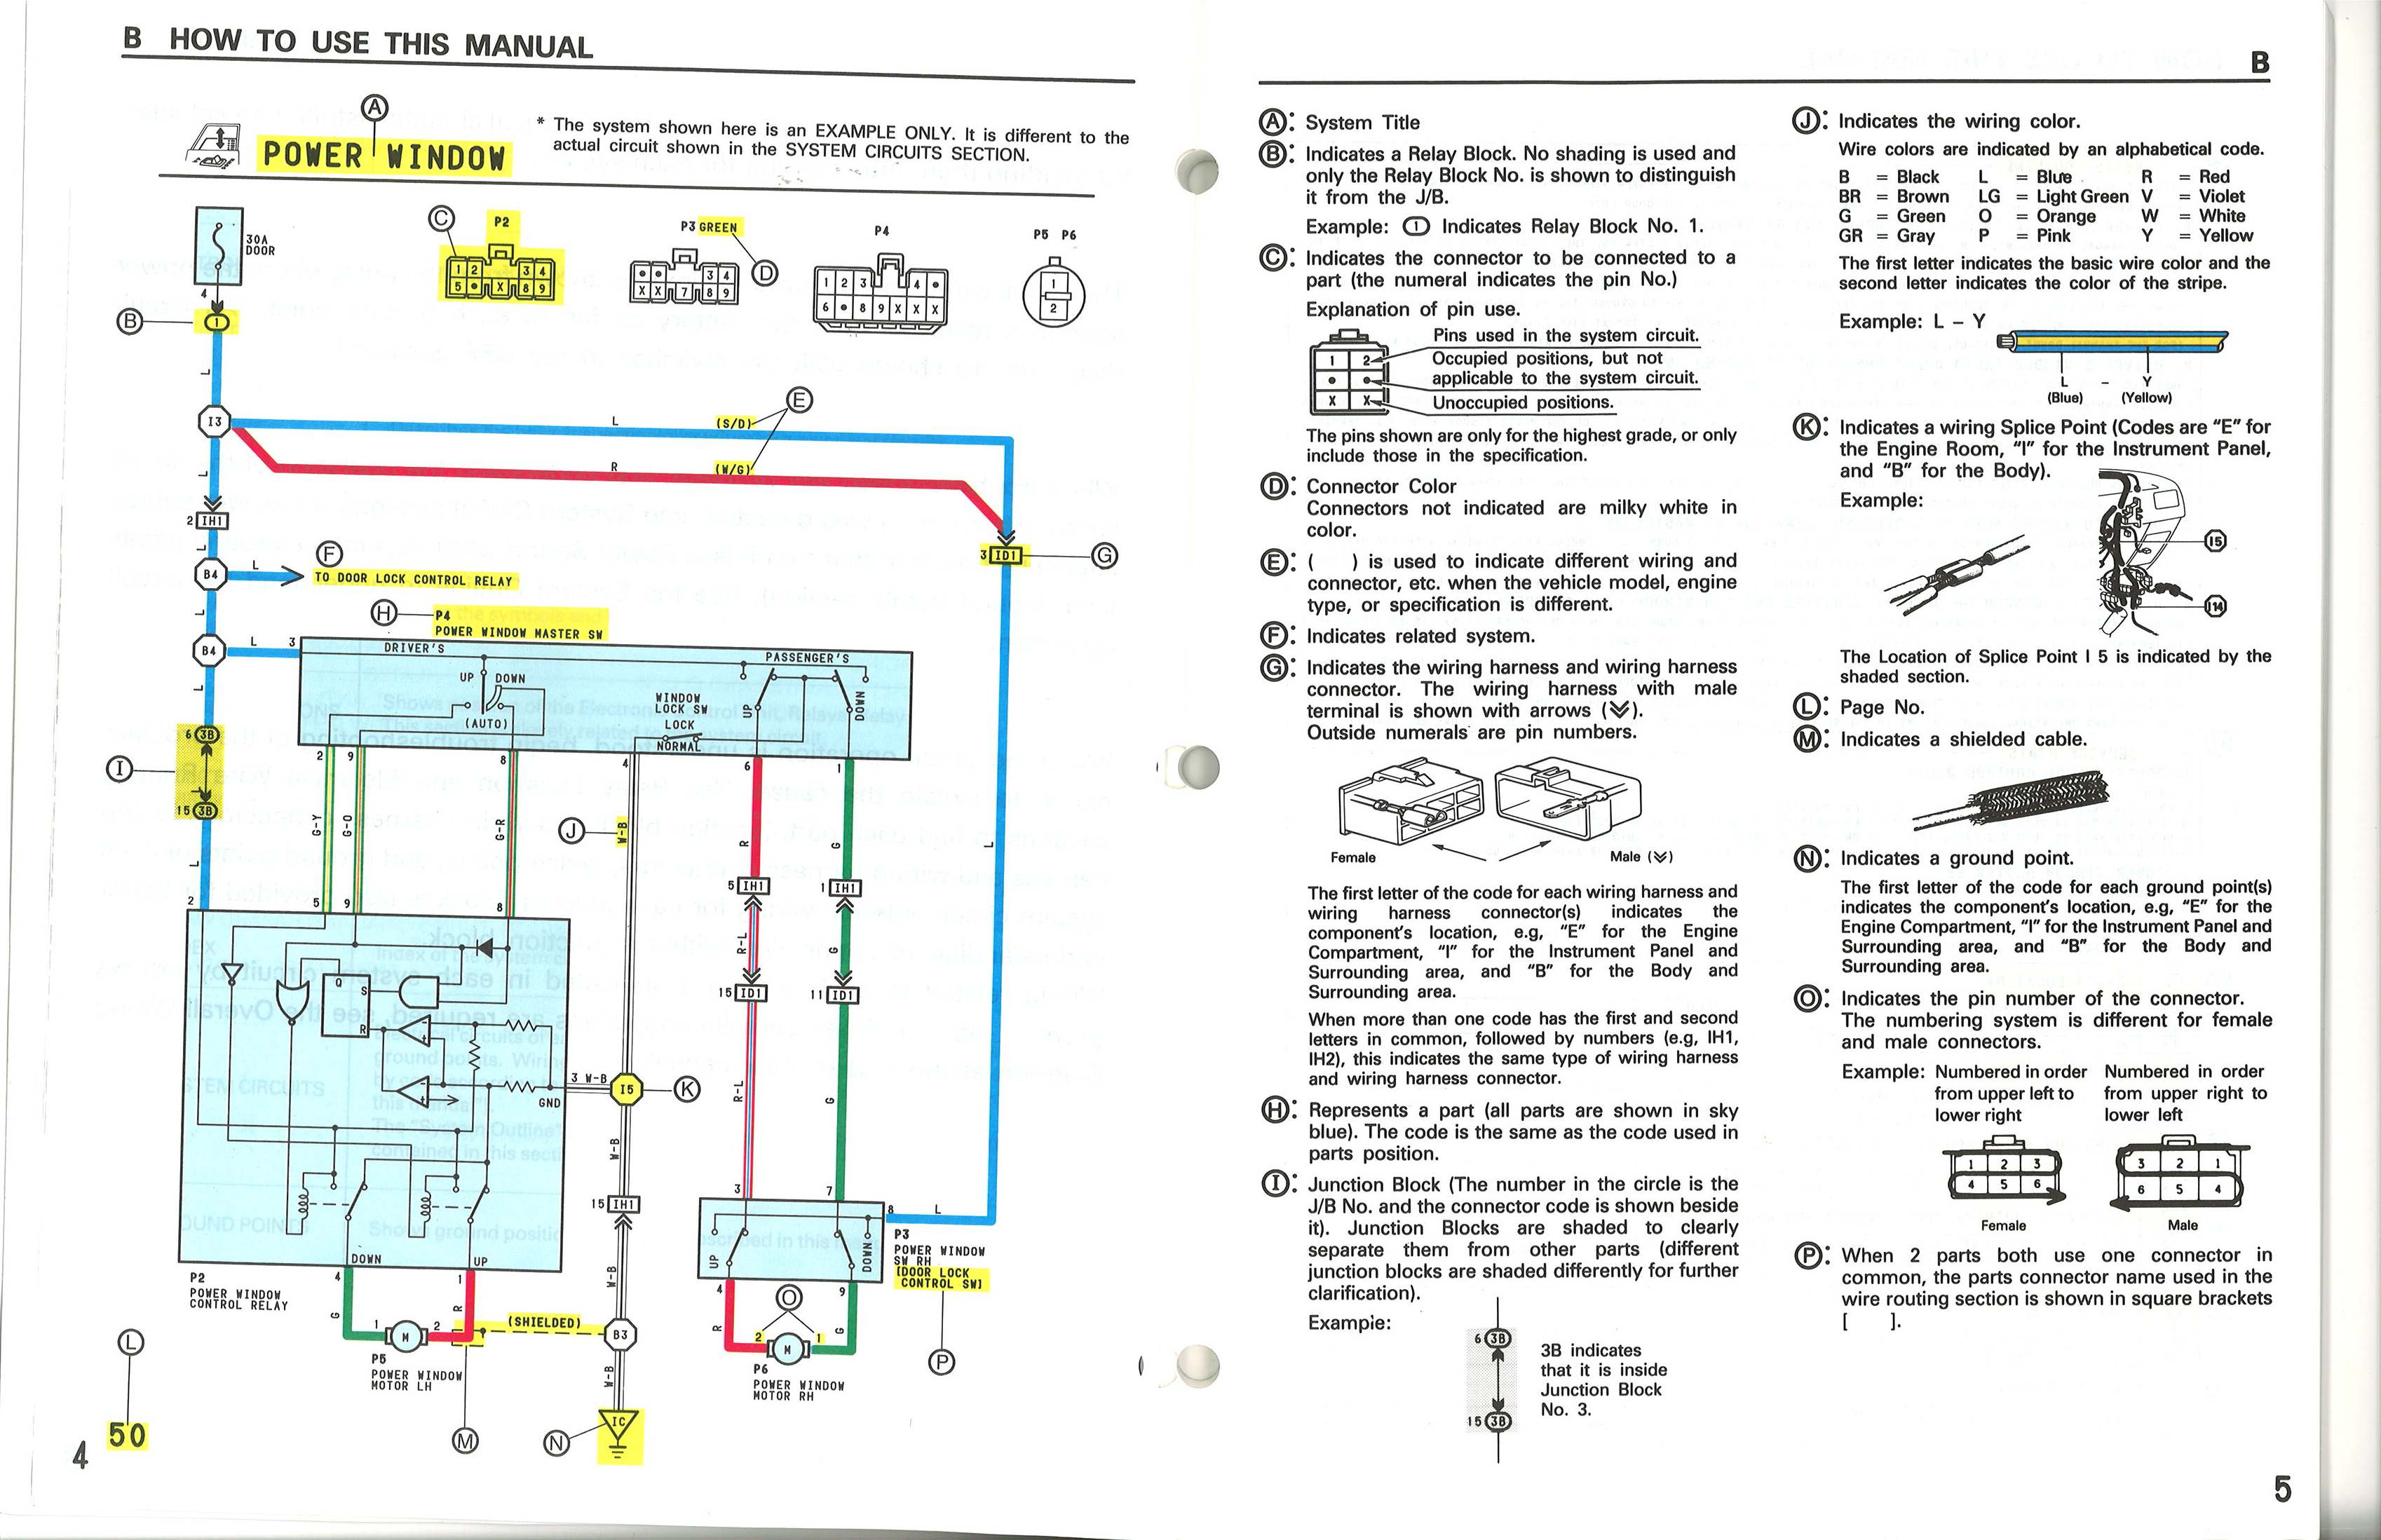 how_to_use_1 2005 4runner ecu wiring diagram 1995 toyota 4runner wiring diagram 2004 toyota 4runner wiring diagram at bayanpartner.co